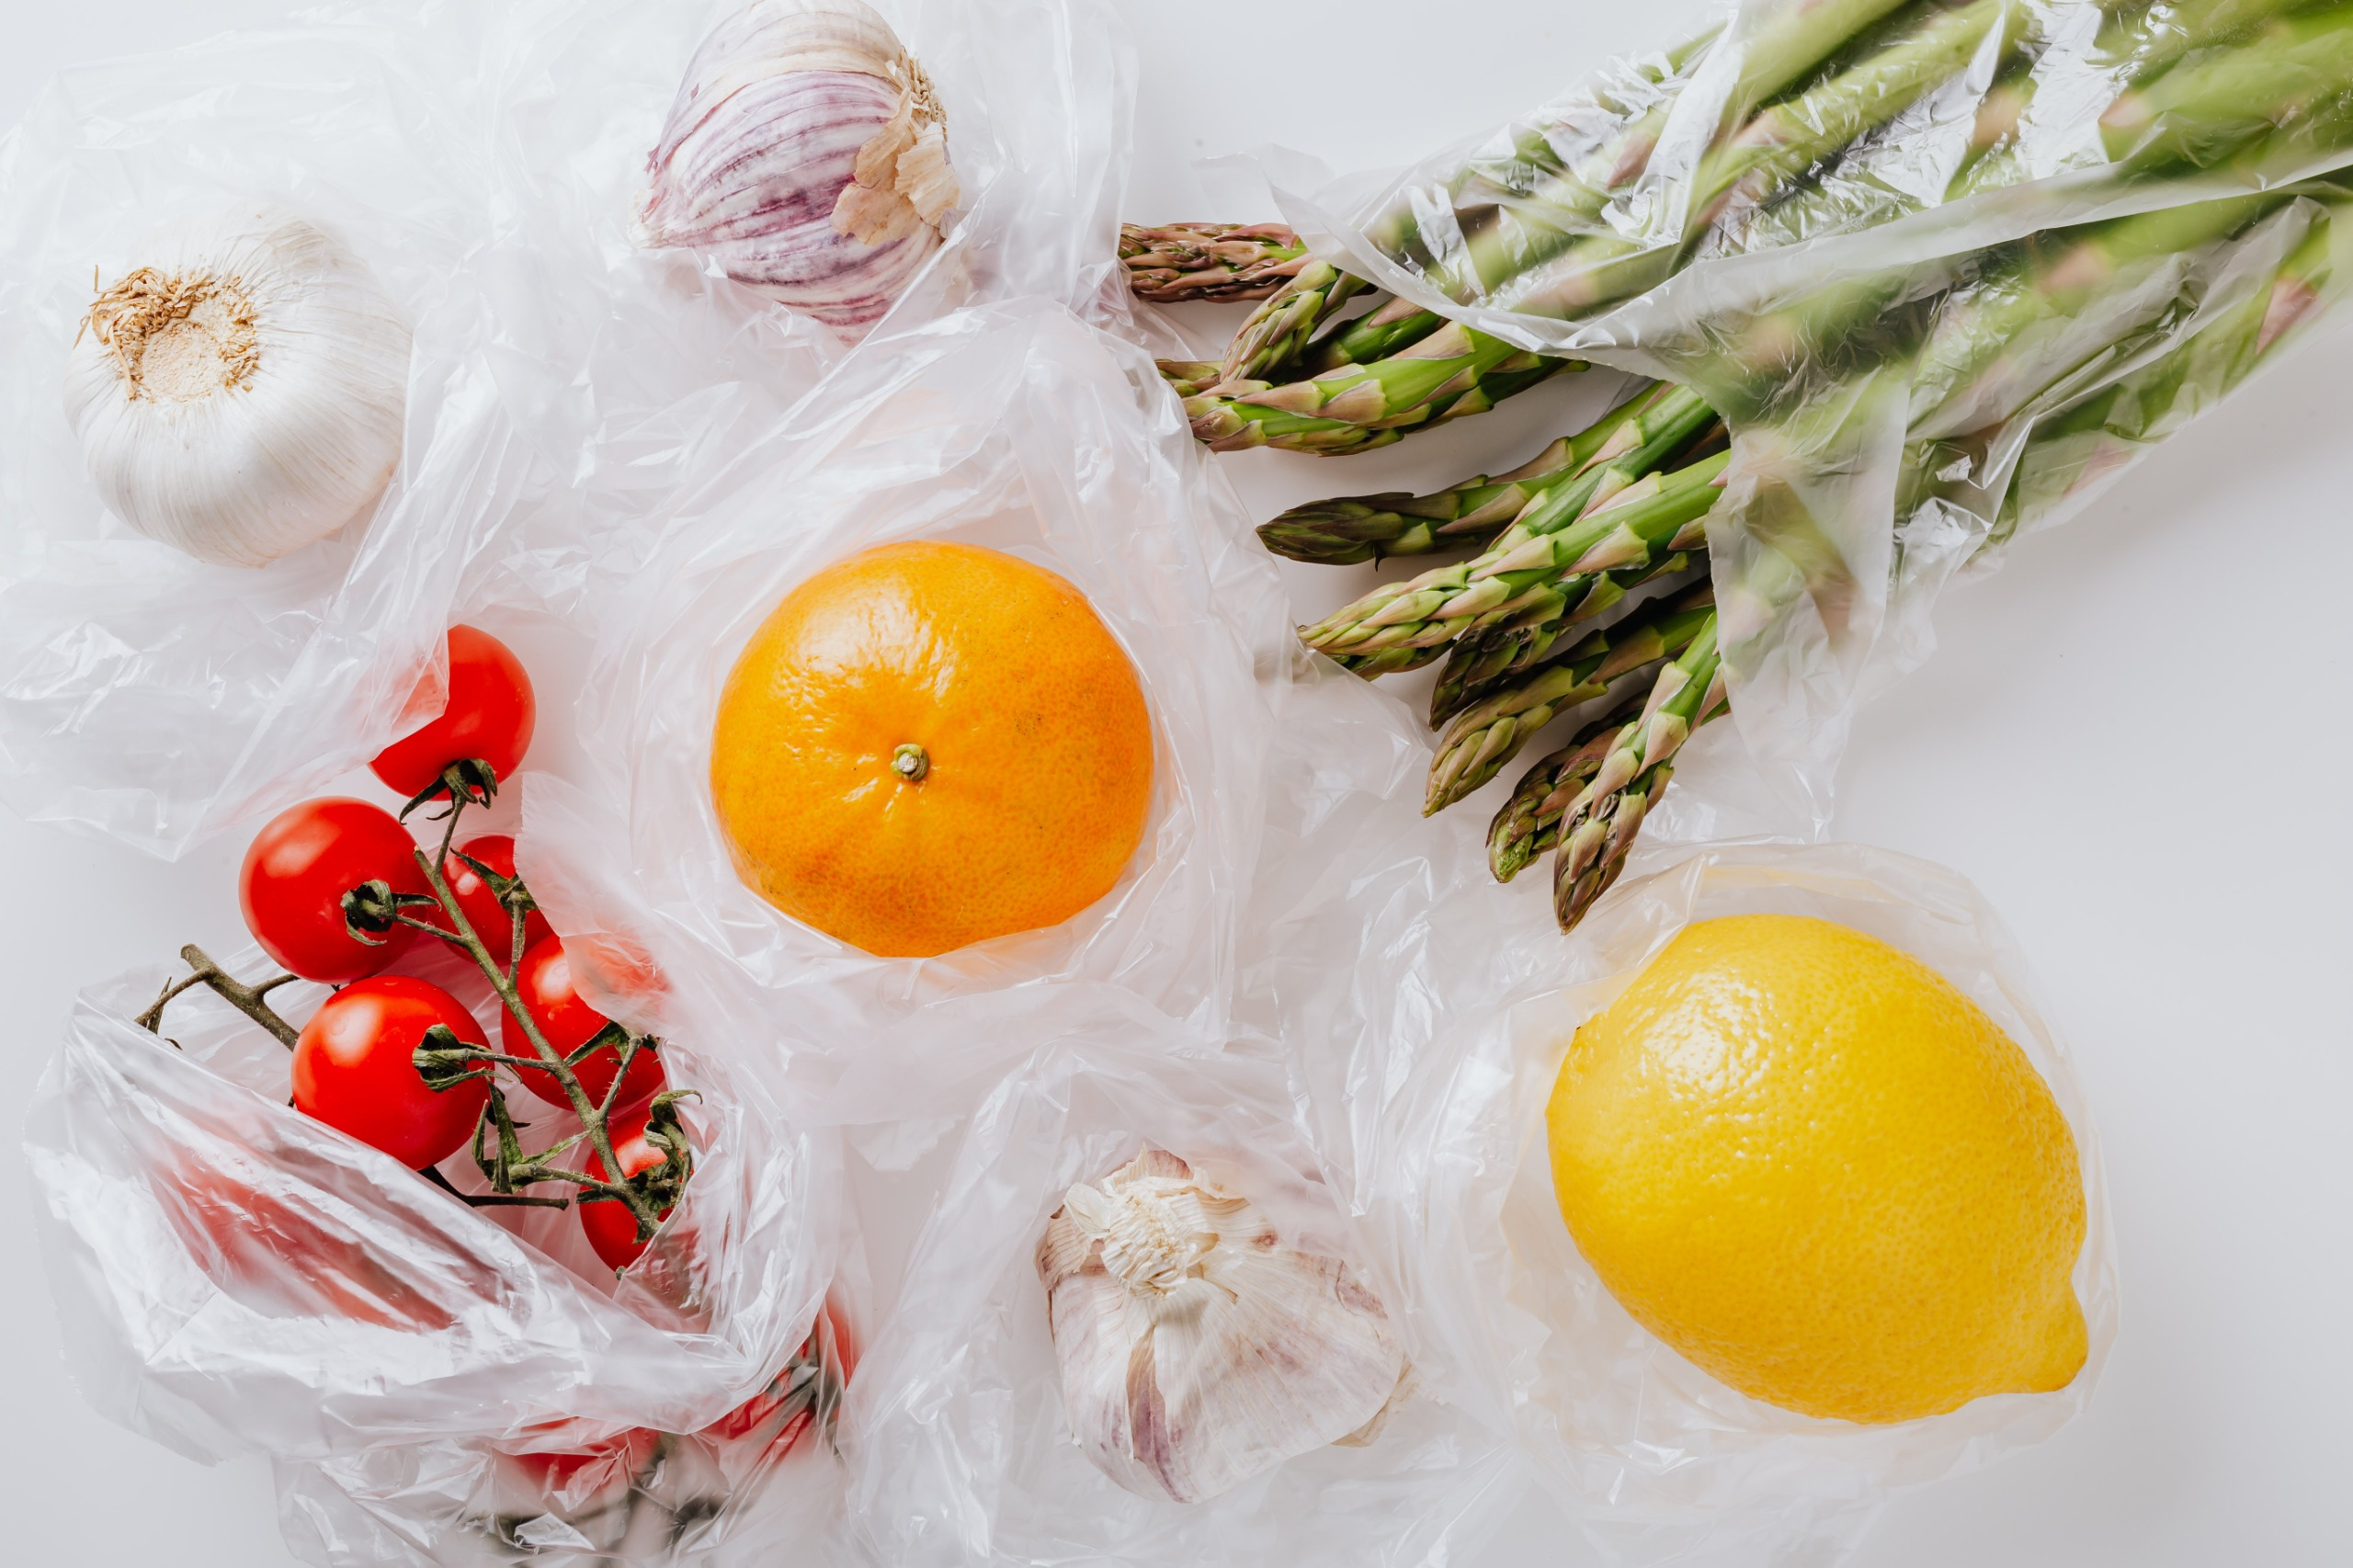 Fruits in plastic bags